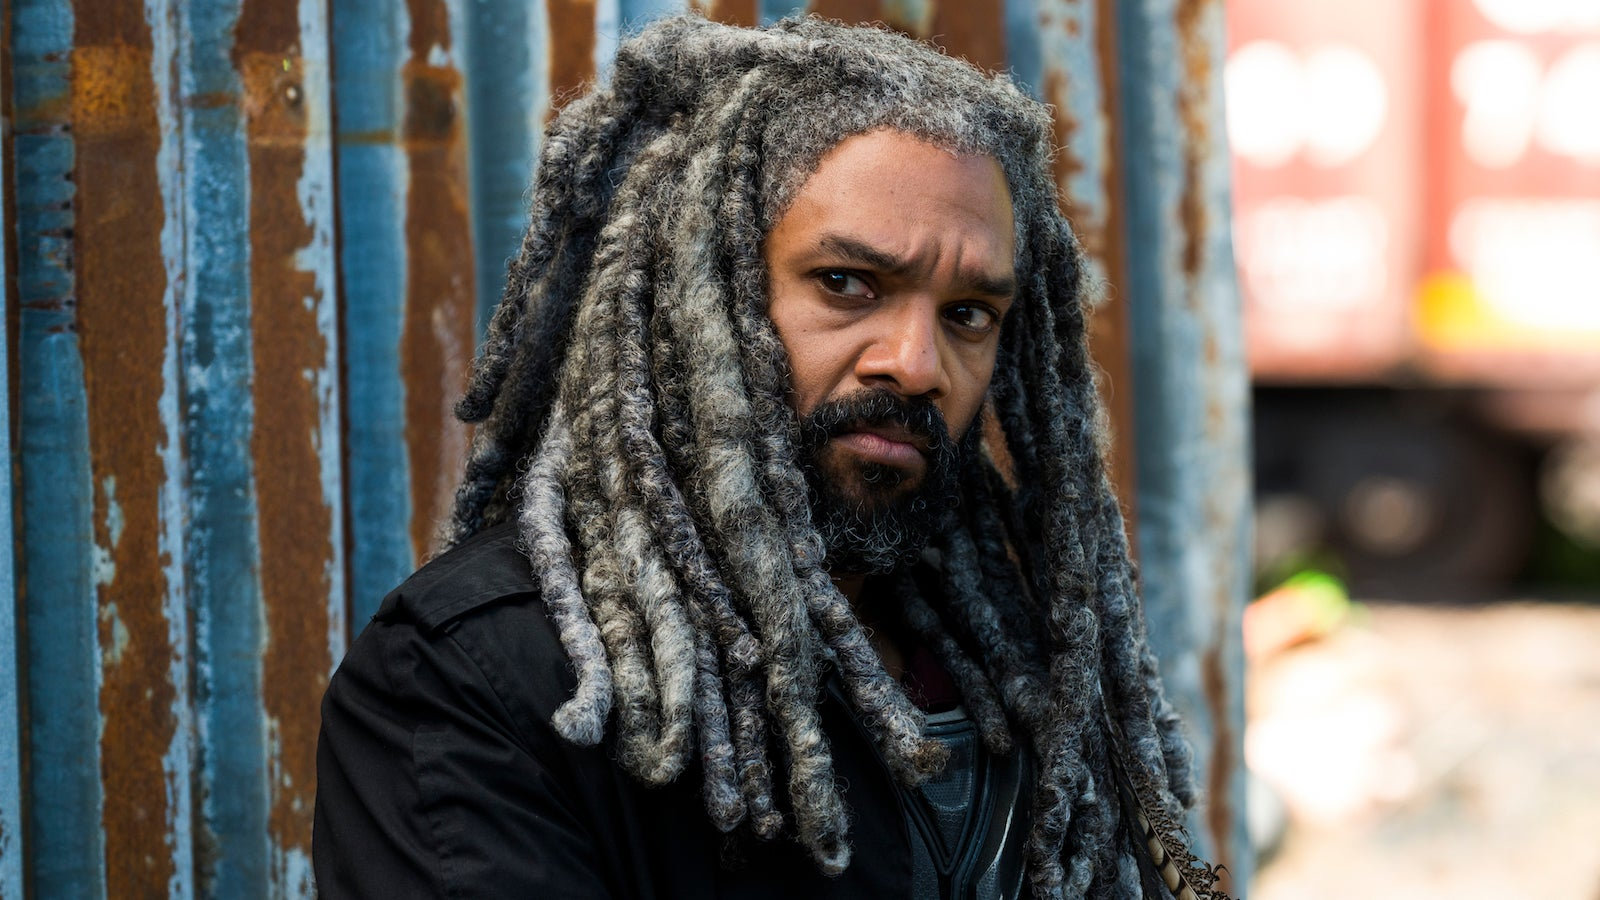 Ezekiel Has An Extremely Bad Day On A Pretty Darned Good Walking Dead